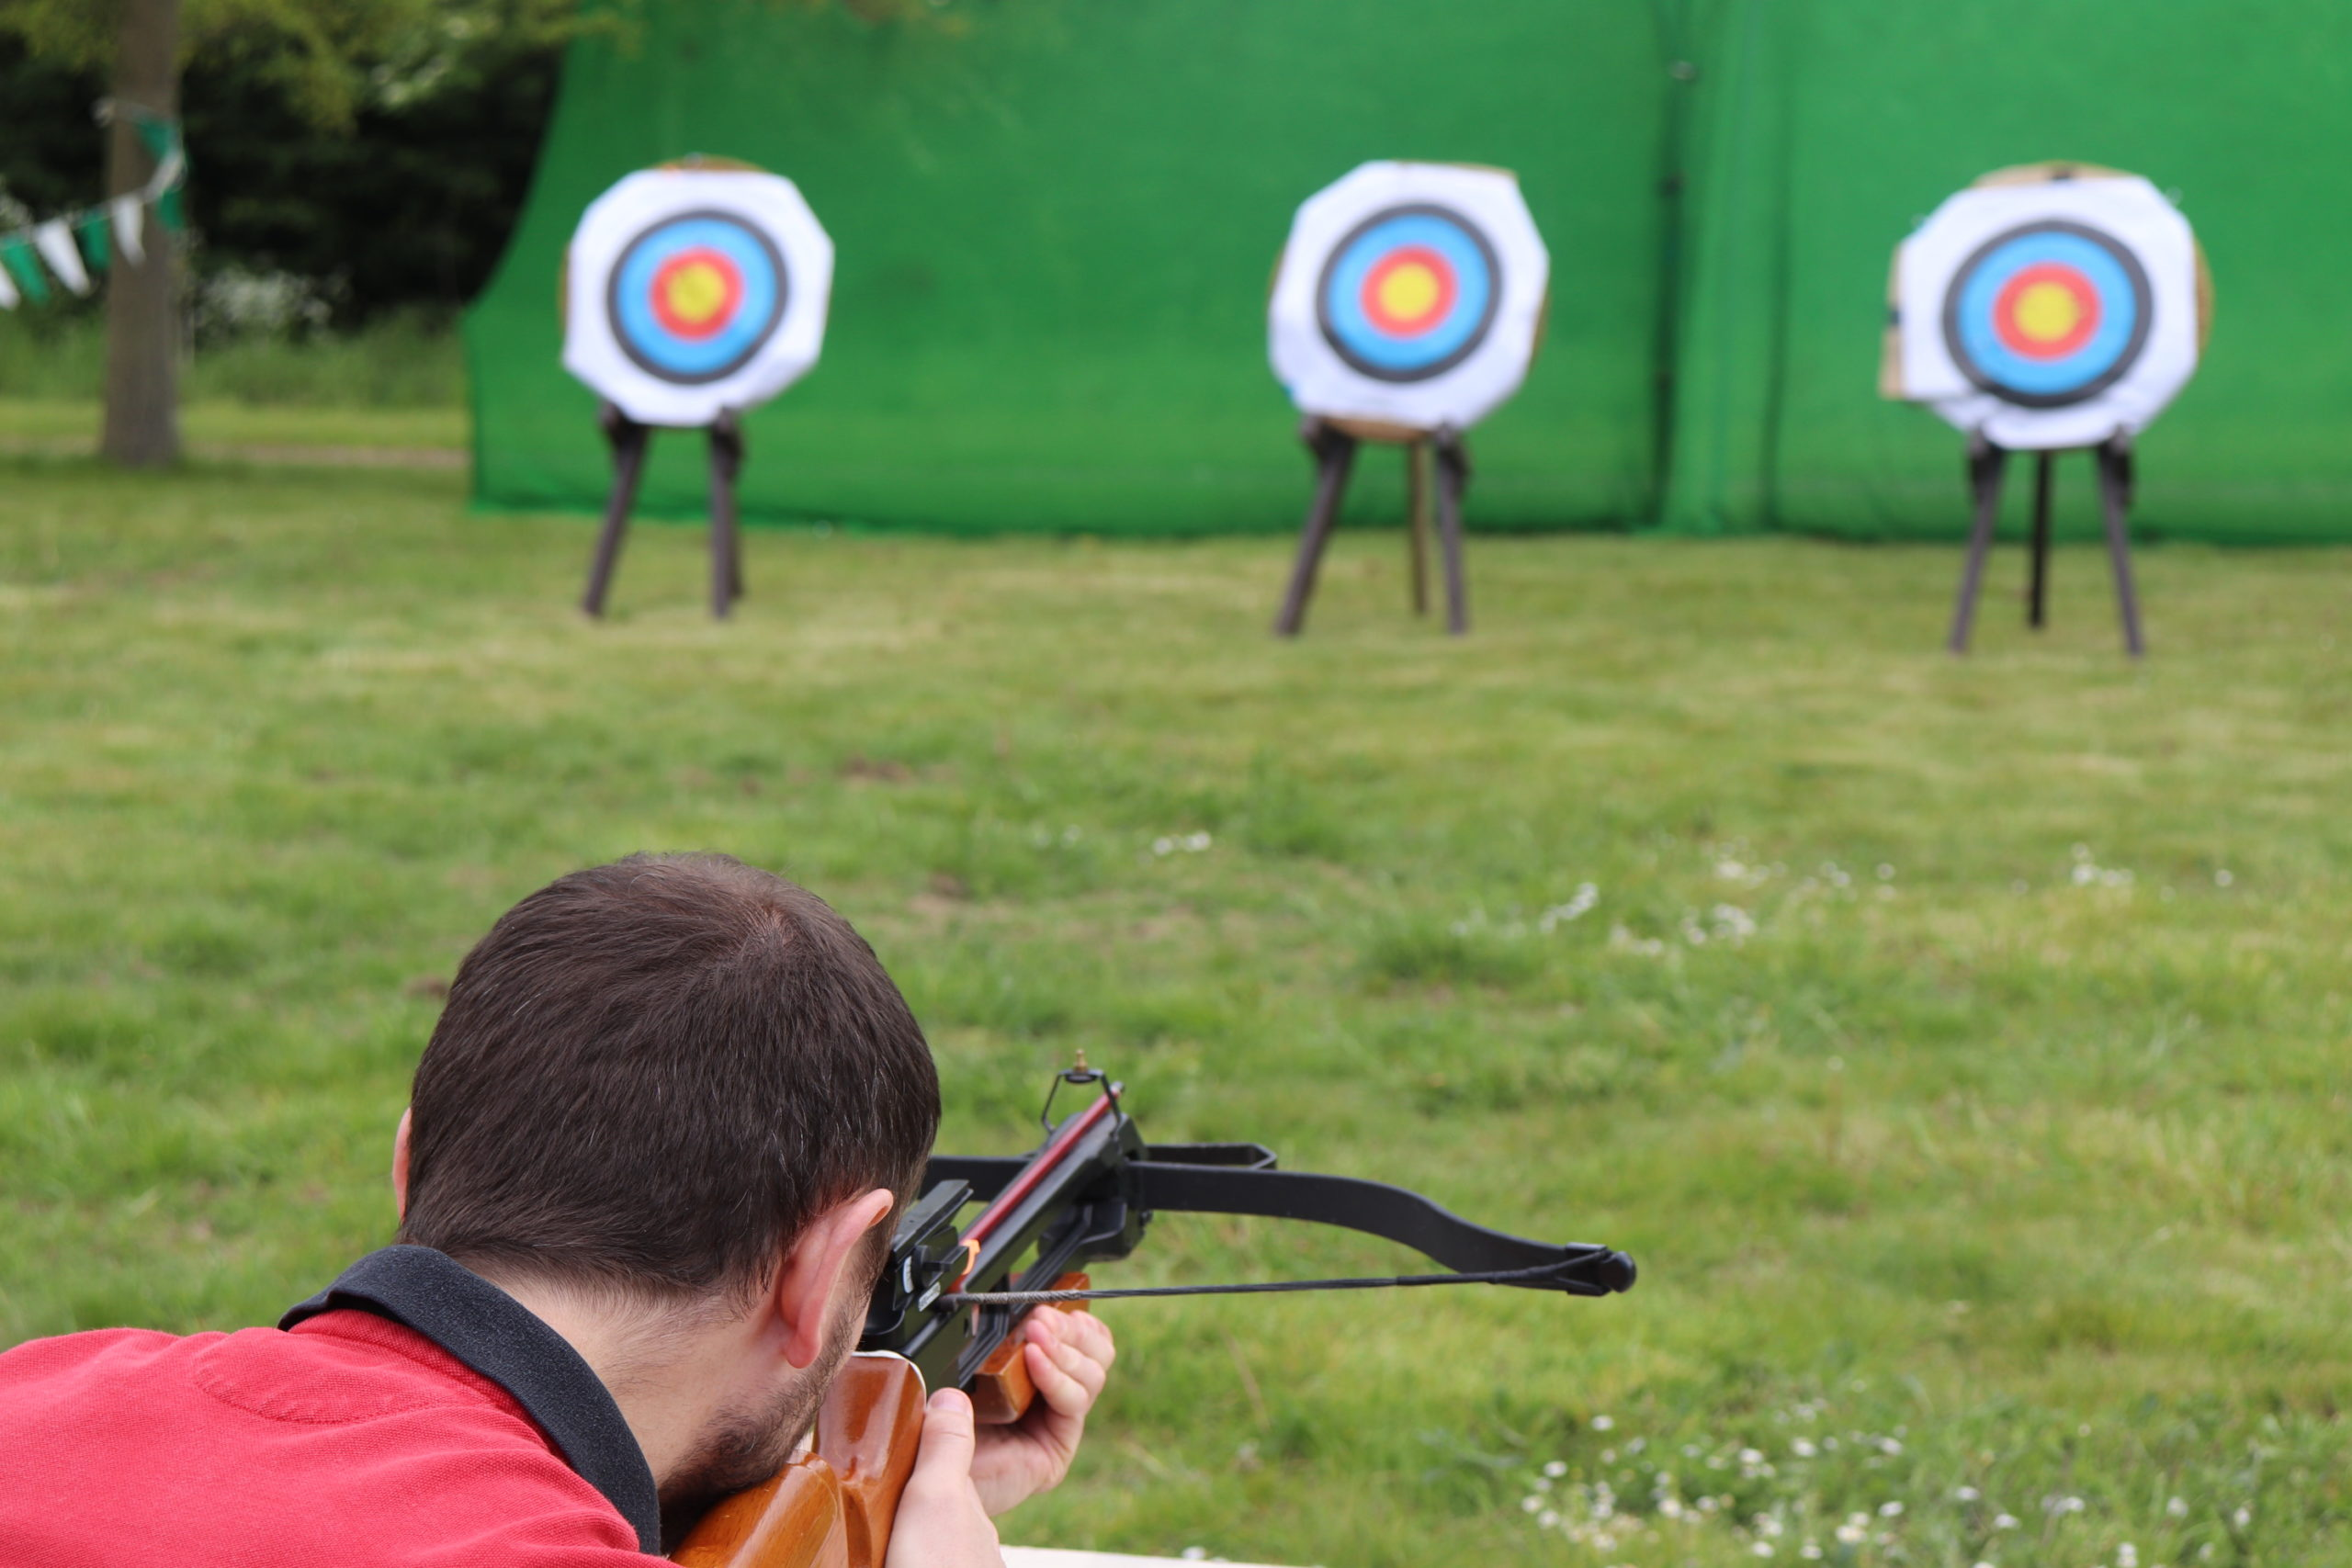 activities gallery with shooting at the target using our latest crossbow, hit the gold to score the team 10 points